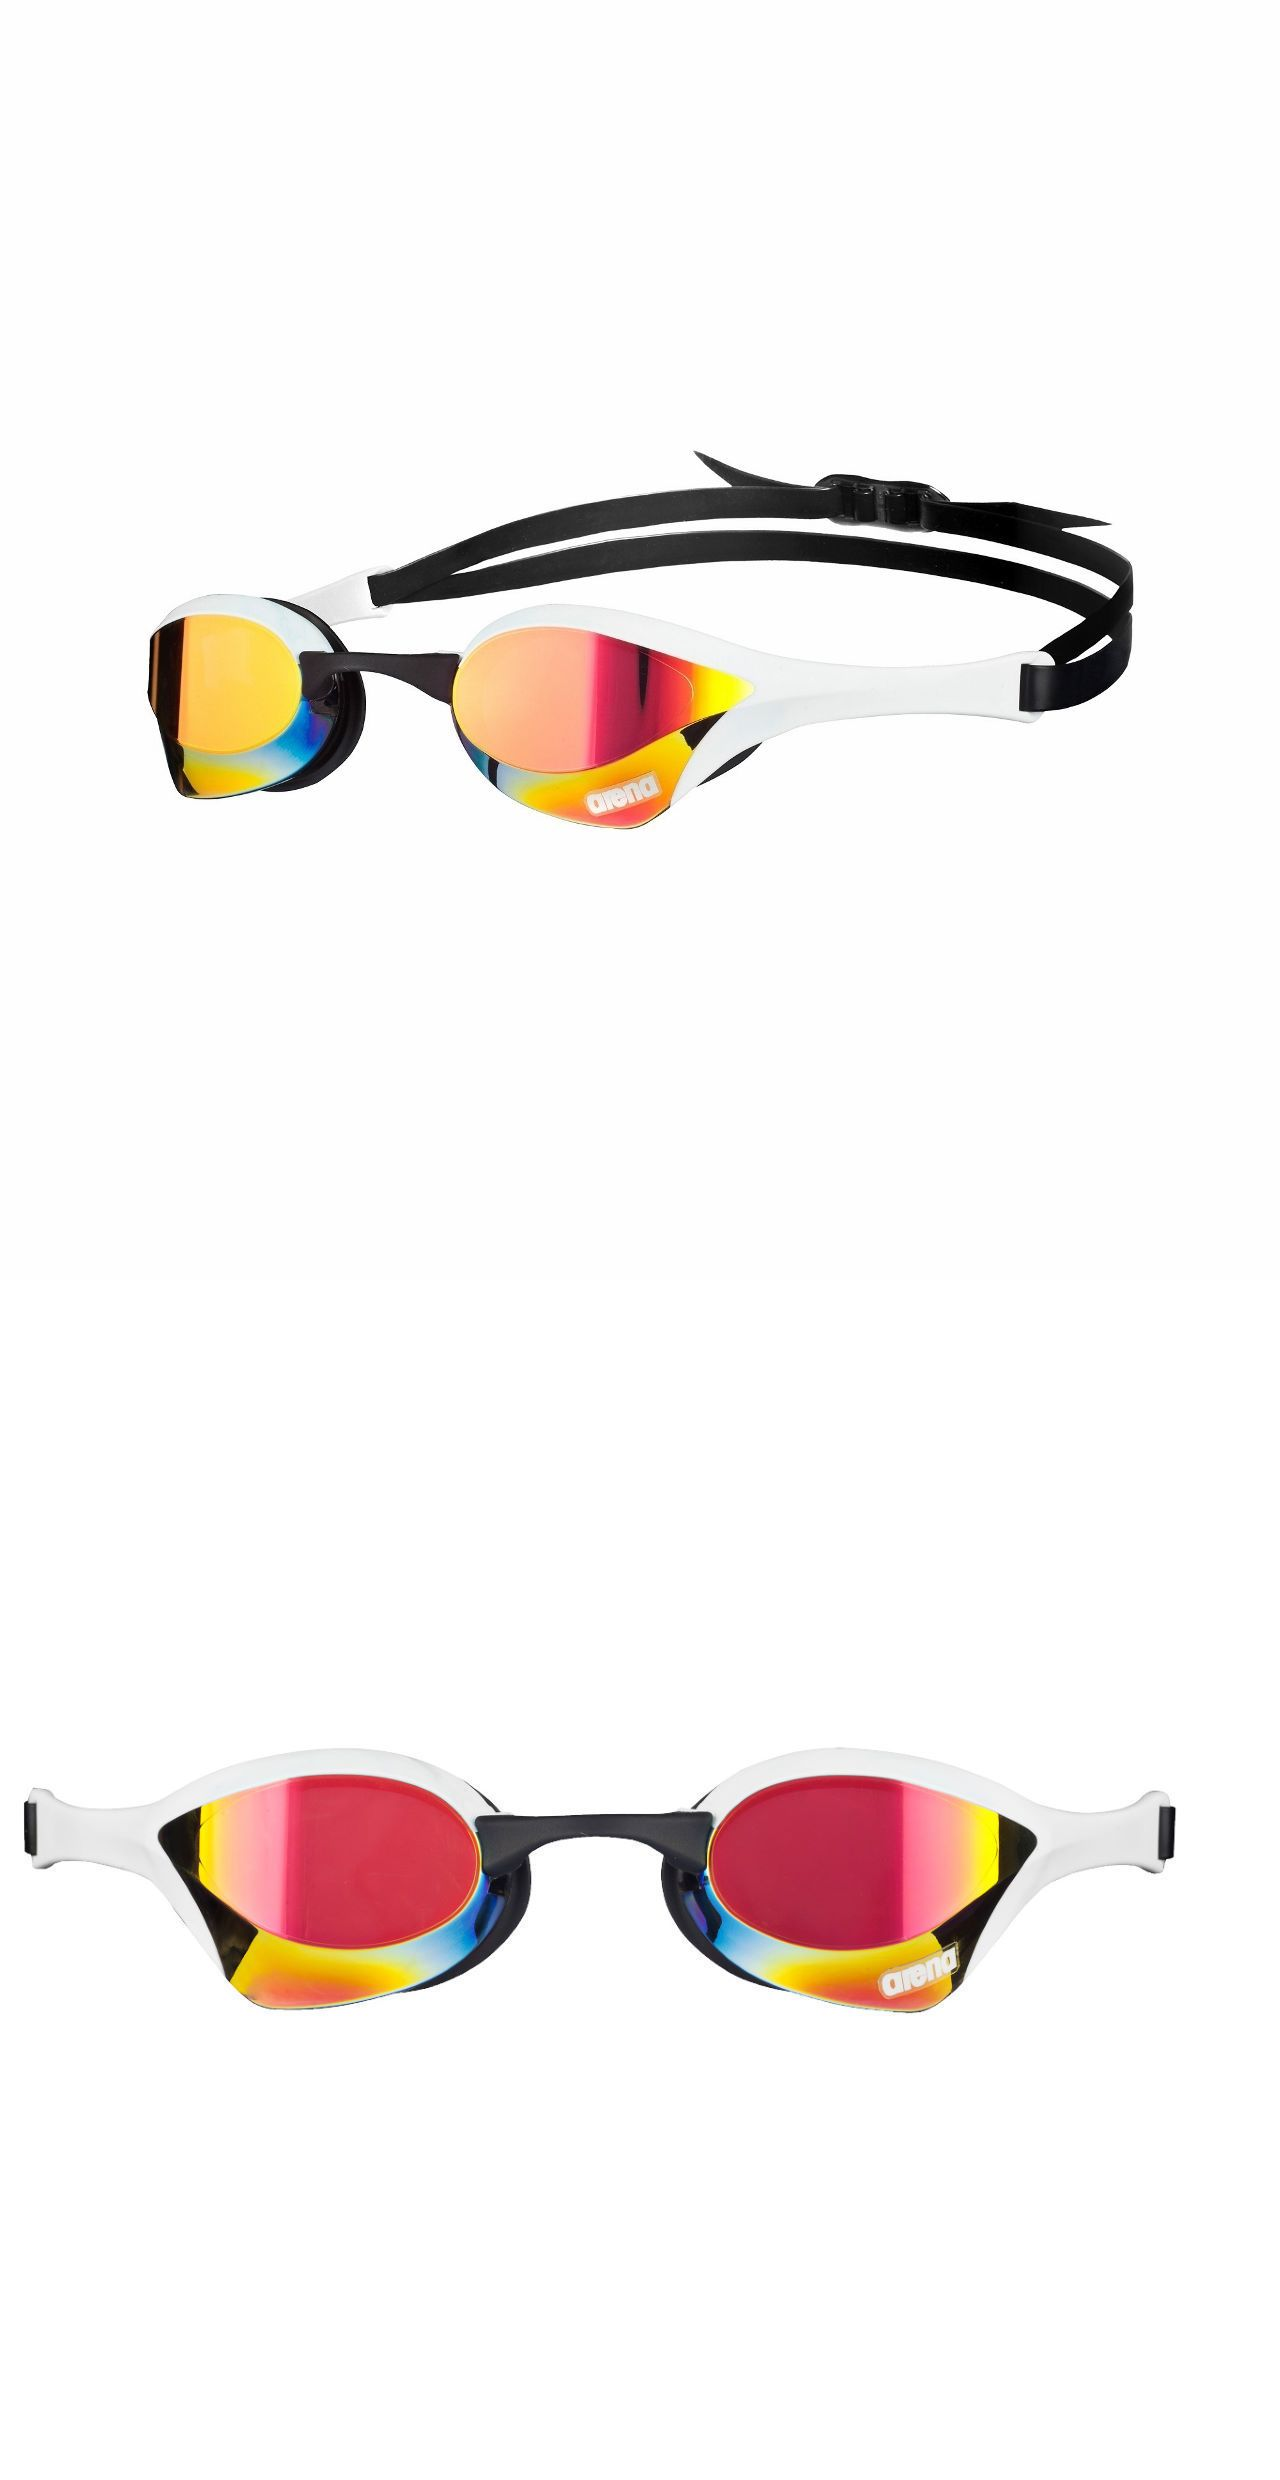 83346884b909 Goggles 74051  Arena Cobra Ultra Mirror Mirrored Swim Swimming Goggles Red  Revo White Black Nip BUY IT NOW ONLY   52.25